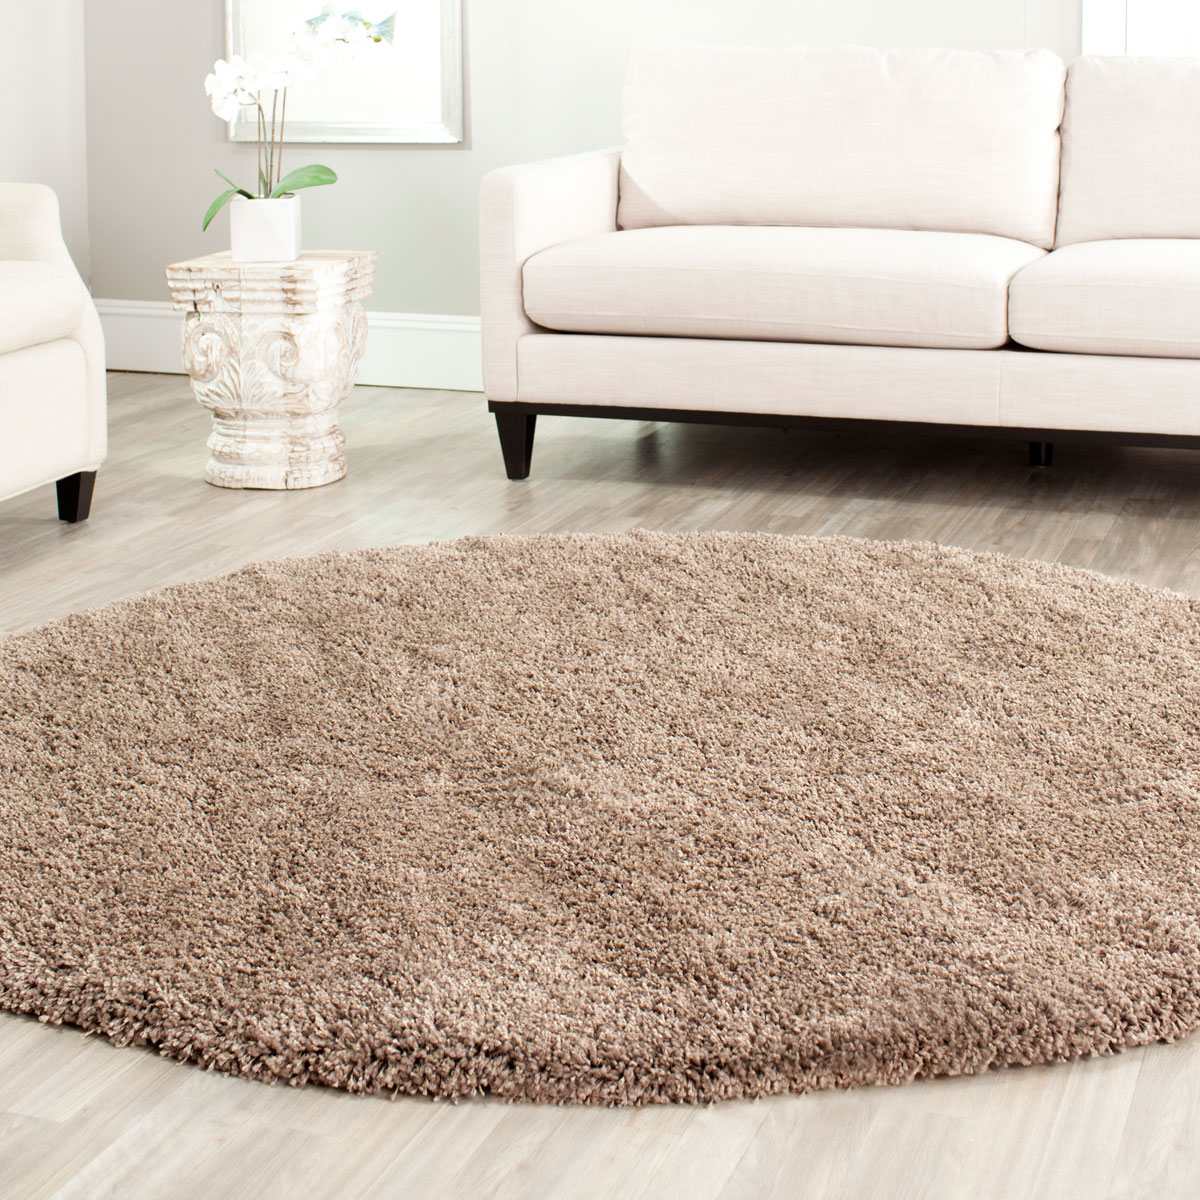 Living Room Shag Rug By Soft Taupe California Collection Safavieh